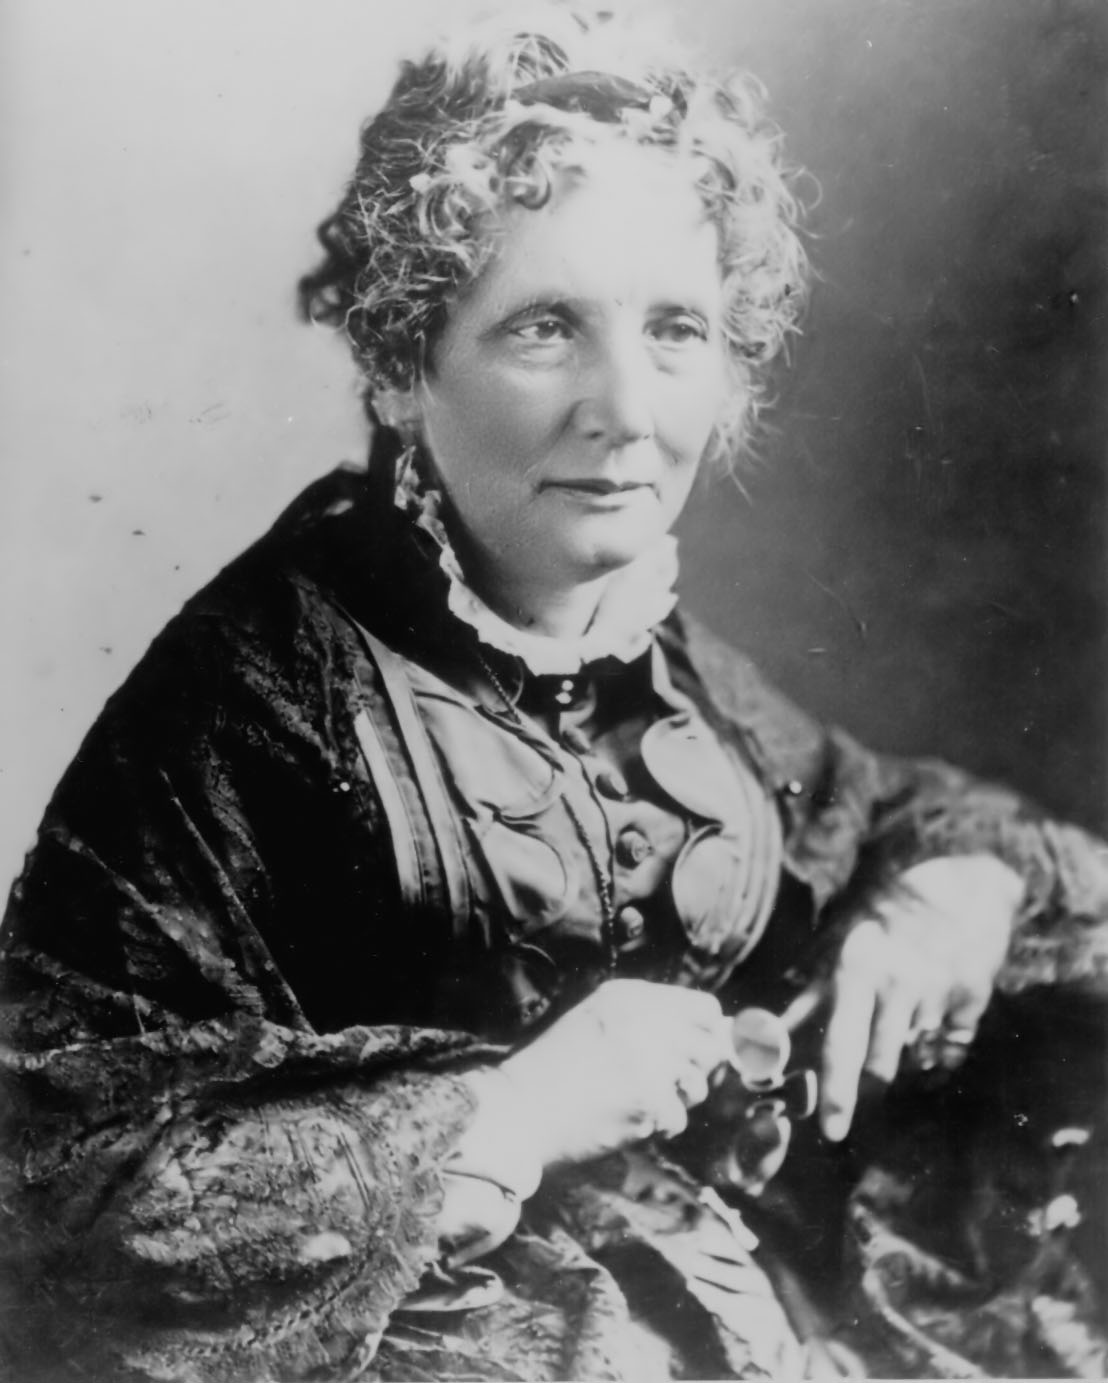 harriet beecher Harriet beecher stowe: harriet beecher stowe, american writer and philanthropist, the author of the novel uncle tom's cabin, which contributed so much to popular feeling against slavery that it is cited among the causes of the american civil war learn more about stowe's life and work.